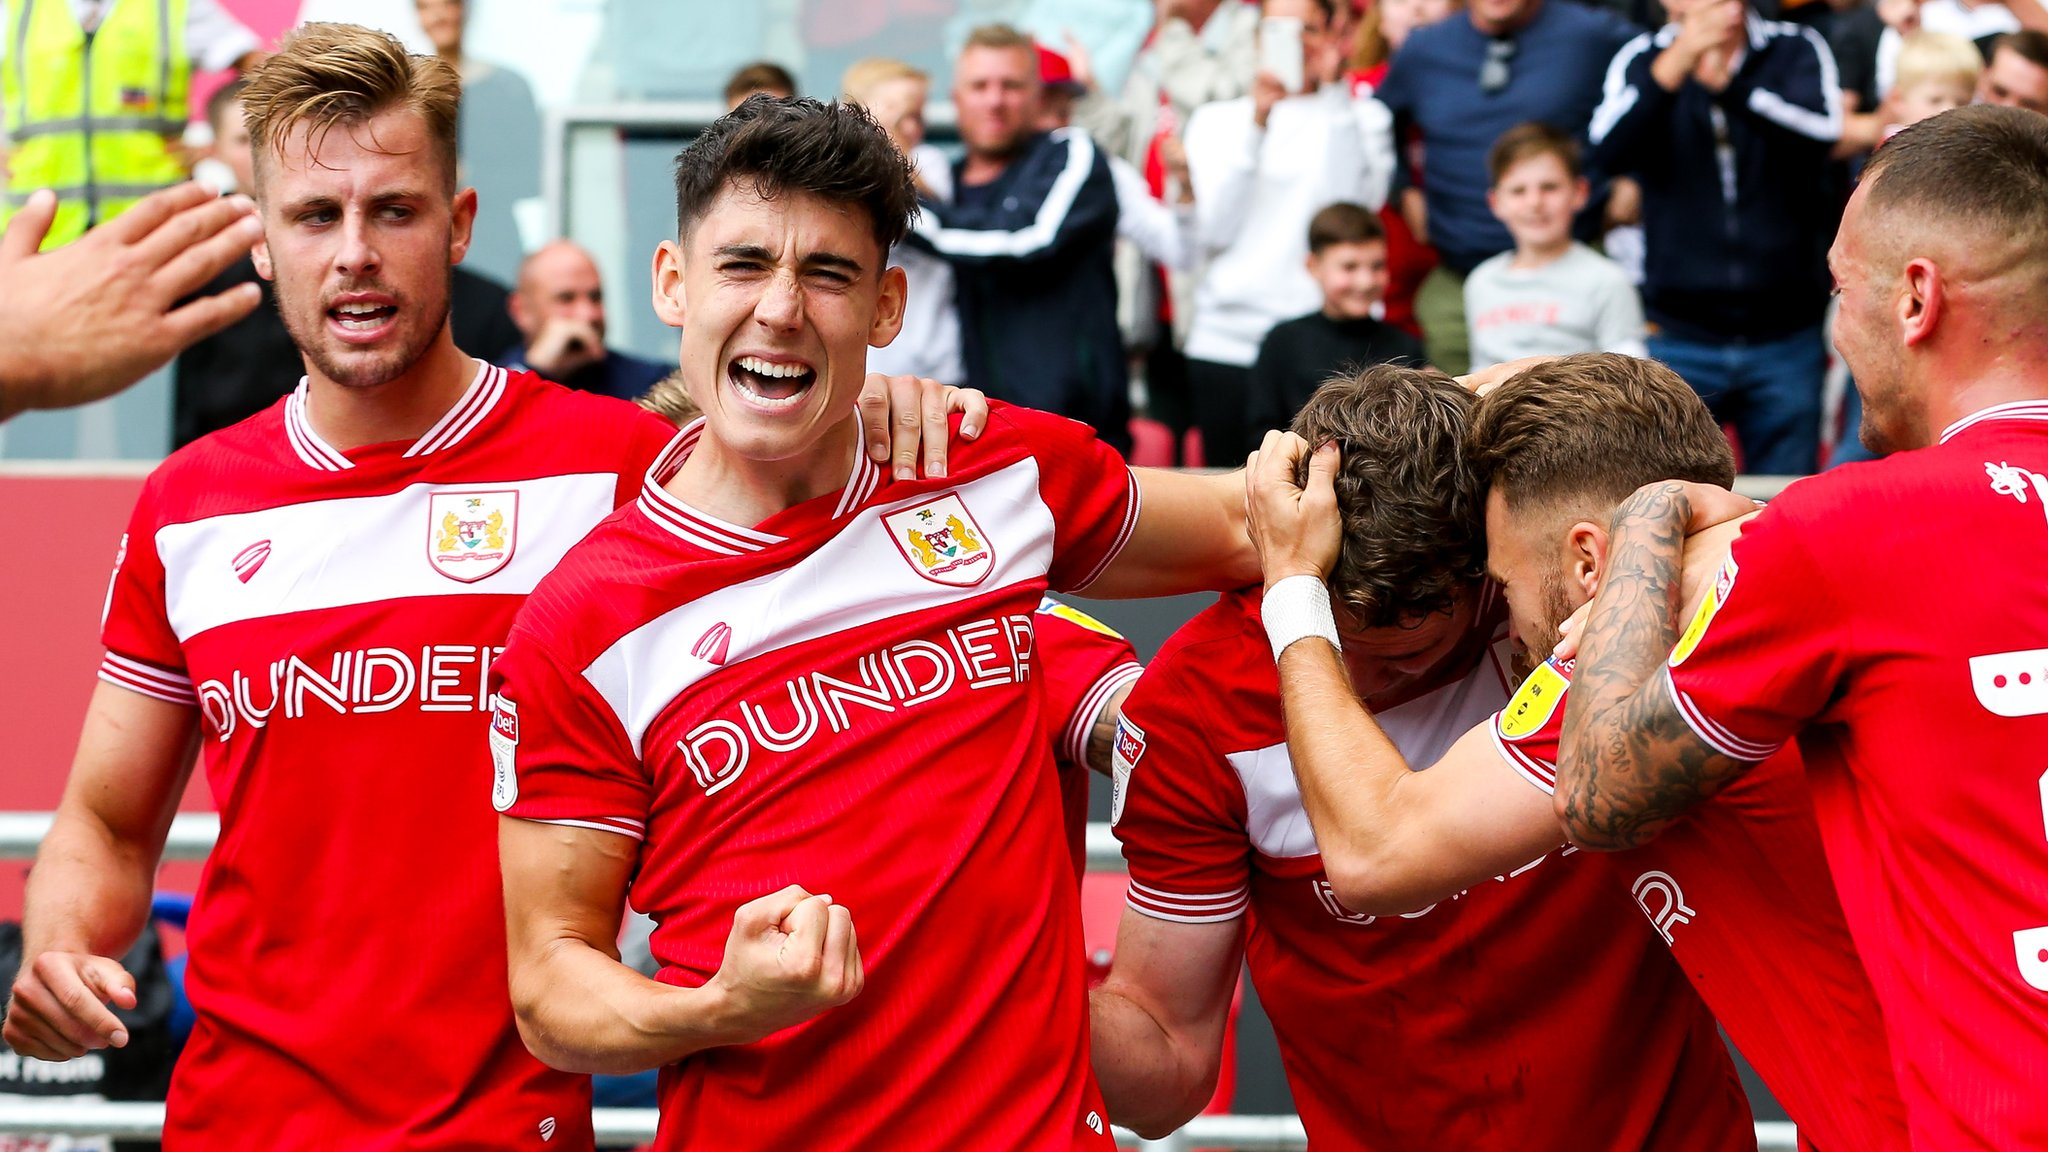 Bristol City 1-0 Sheffield United: Robins leave it late to make it four wins in a row